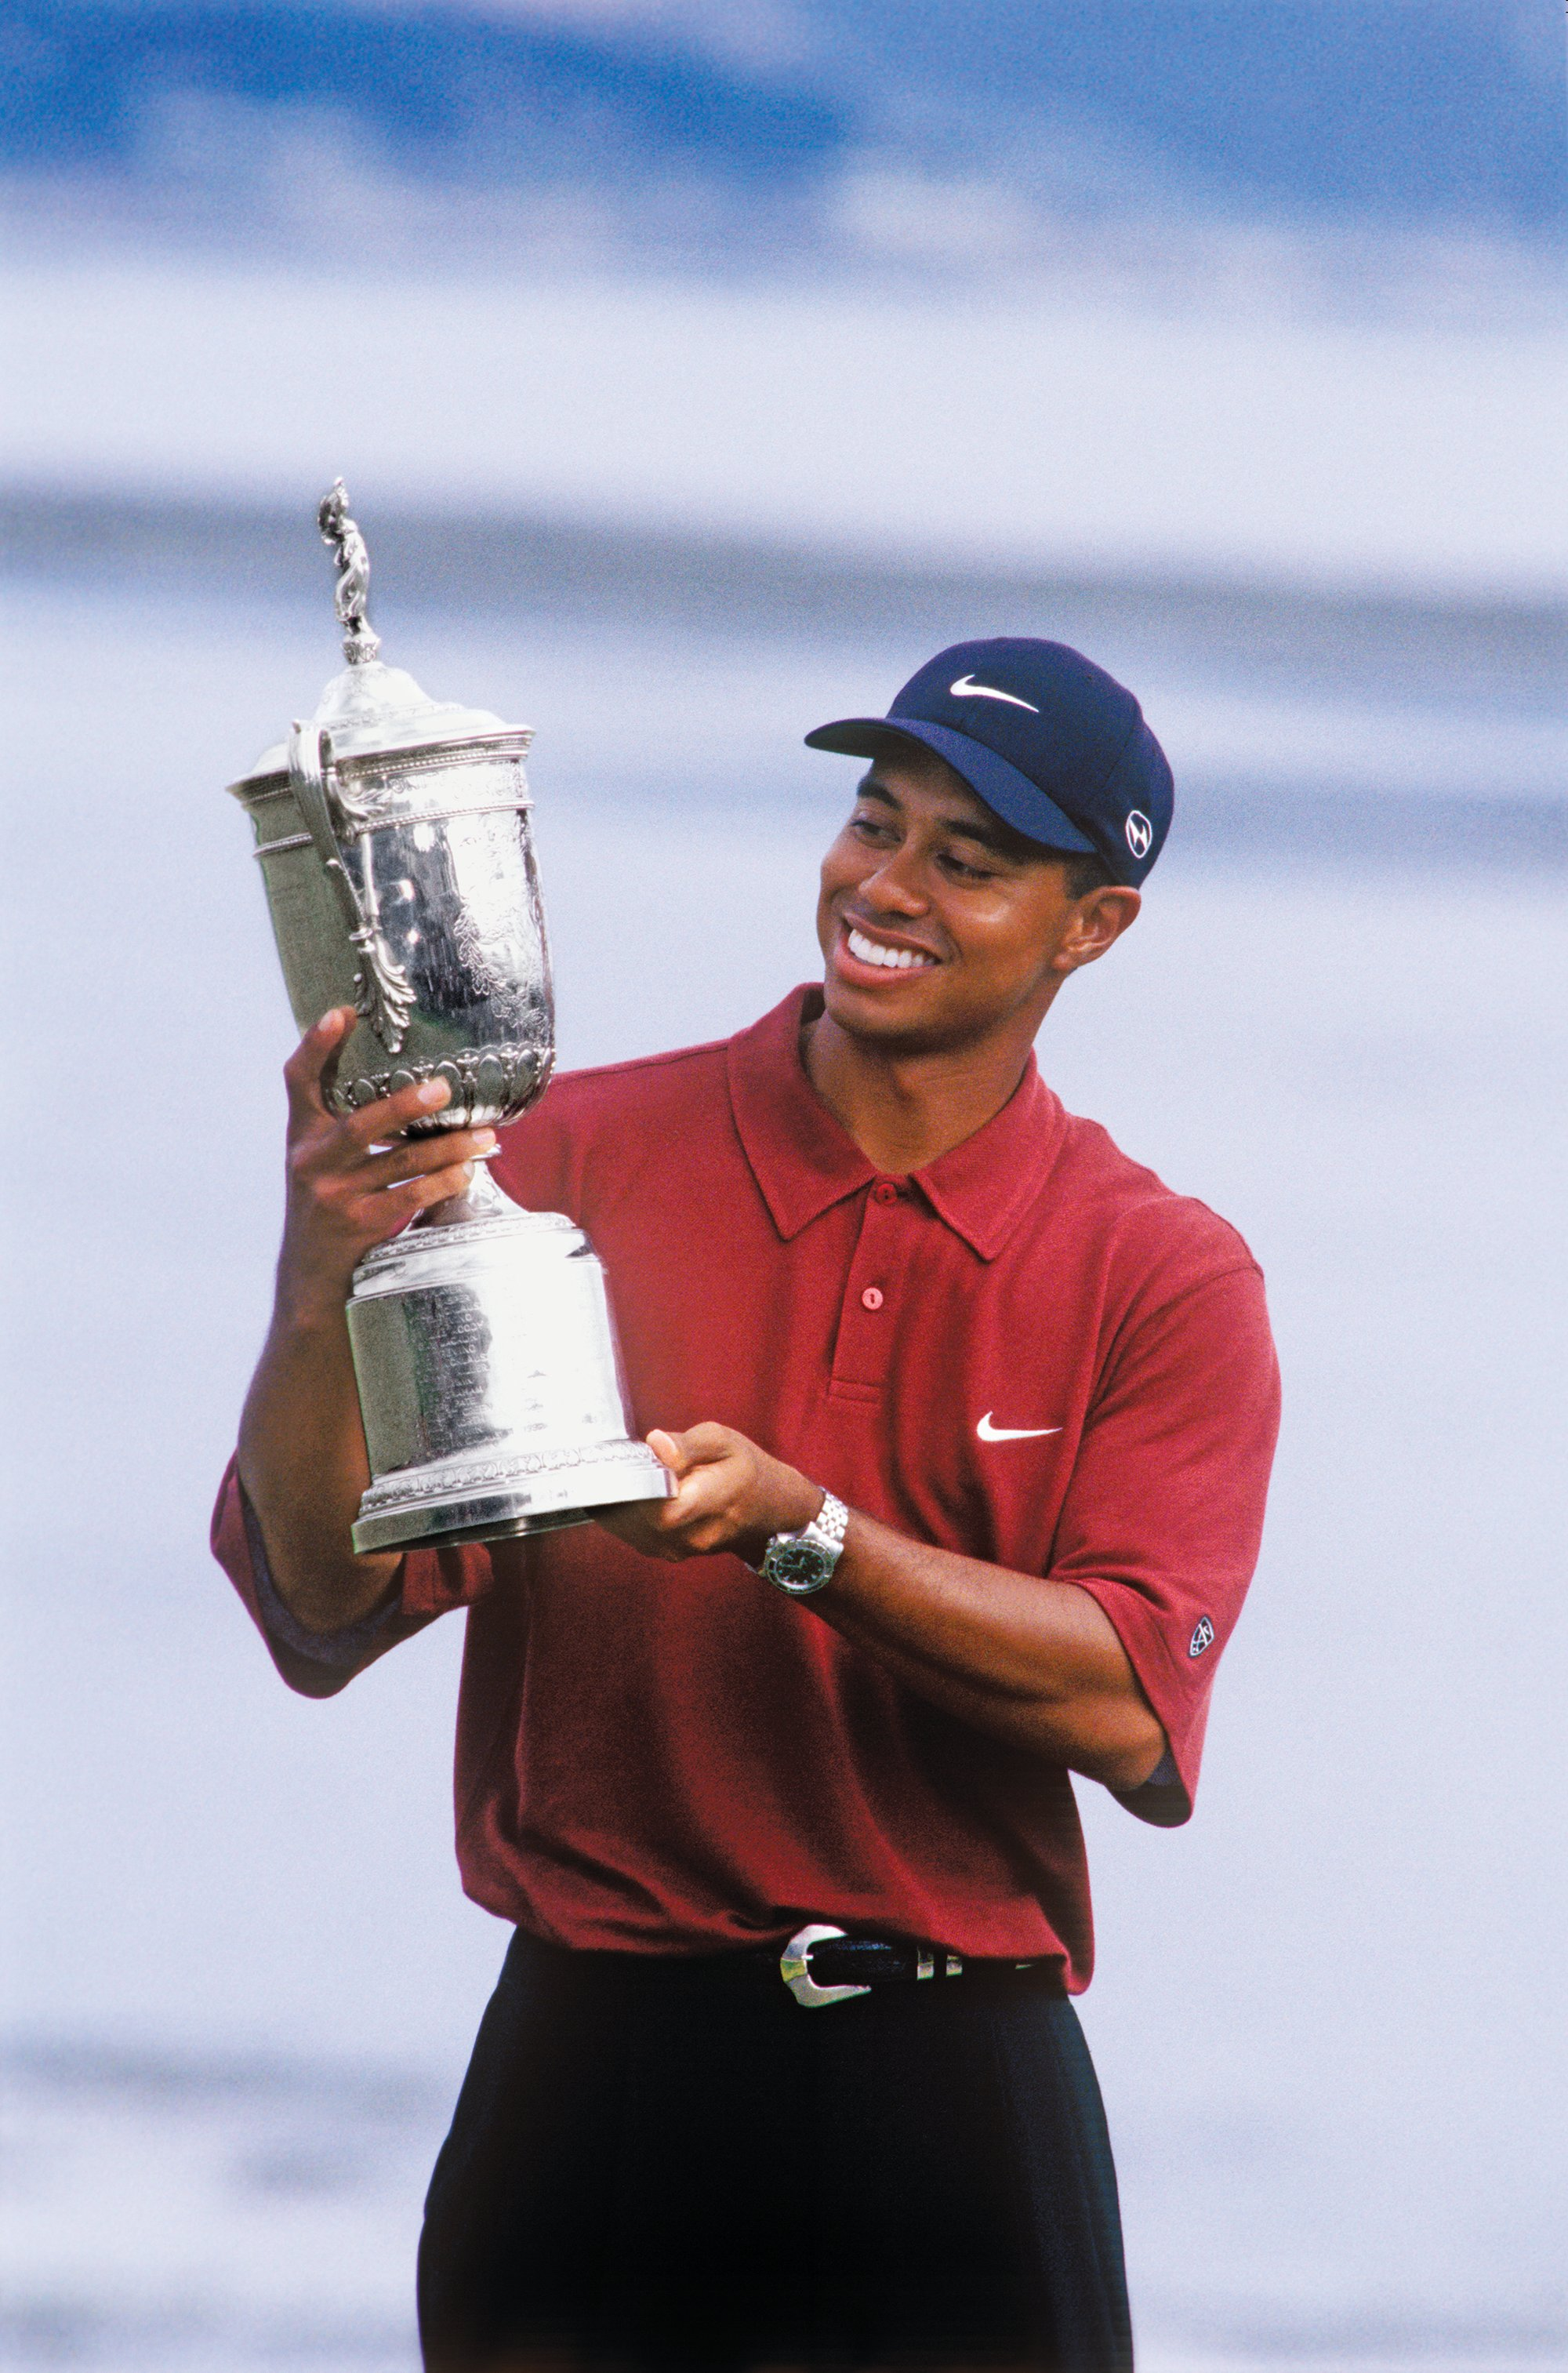 tiger_woods_with_trophy_1_c_pebble_beach_company_edit